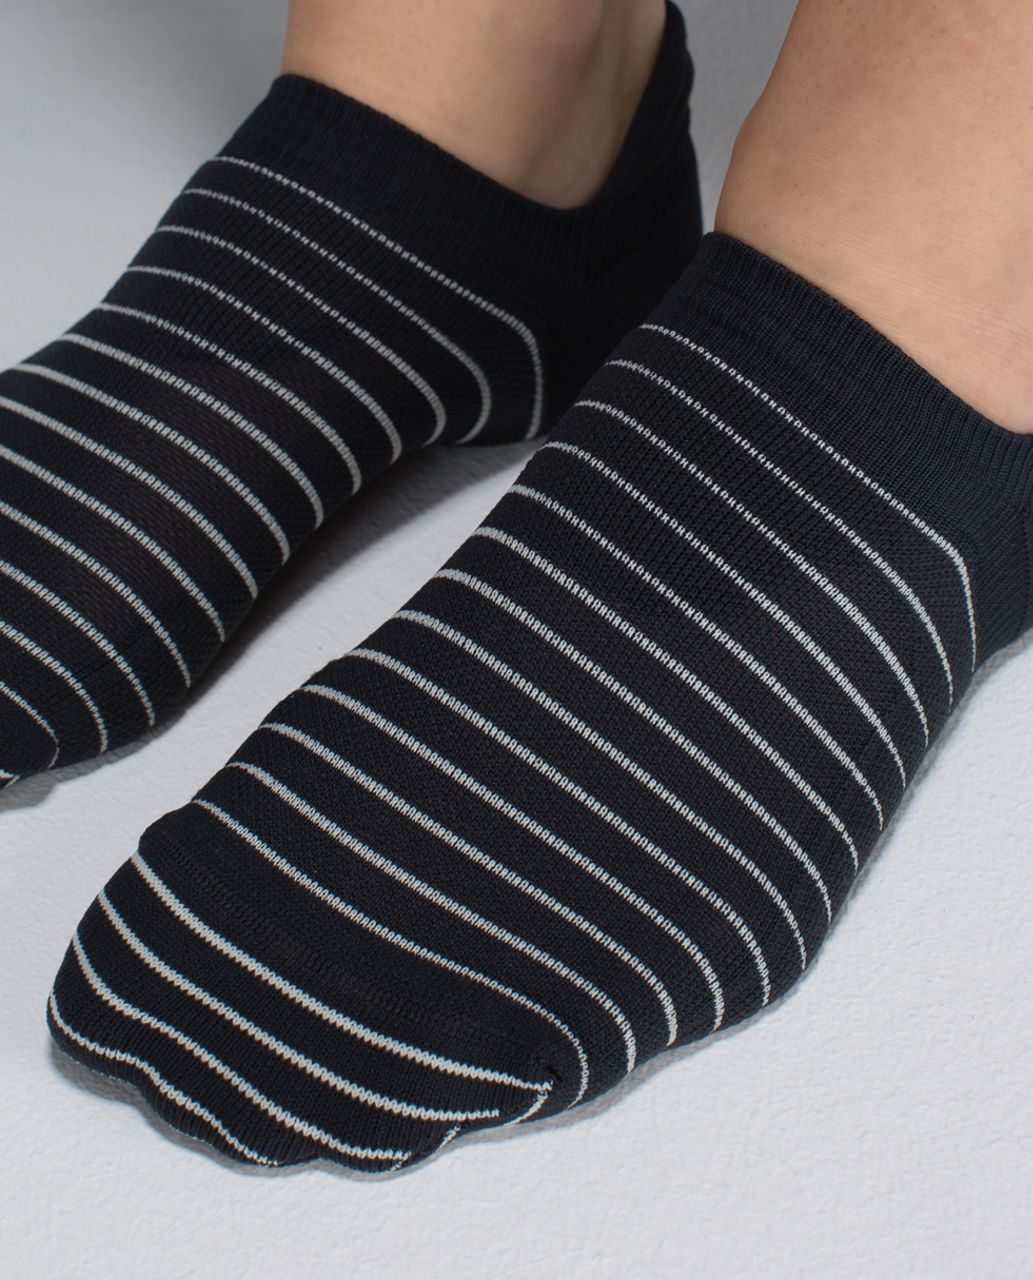 Lululemon Women's Ultimate No Show Run Sock - 2x8 Stripe Deep Coal